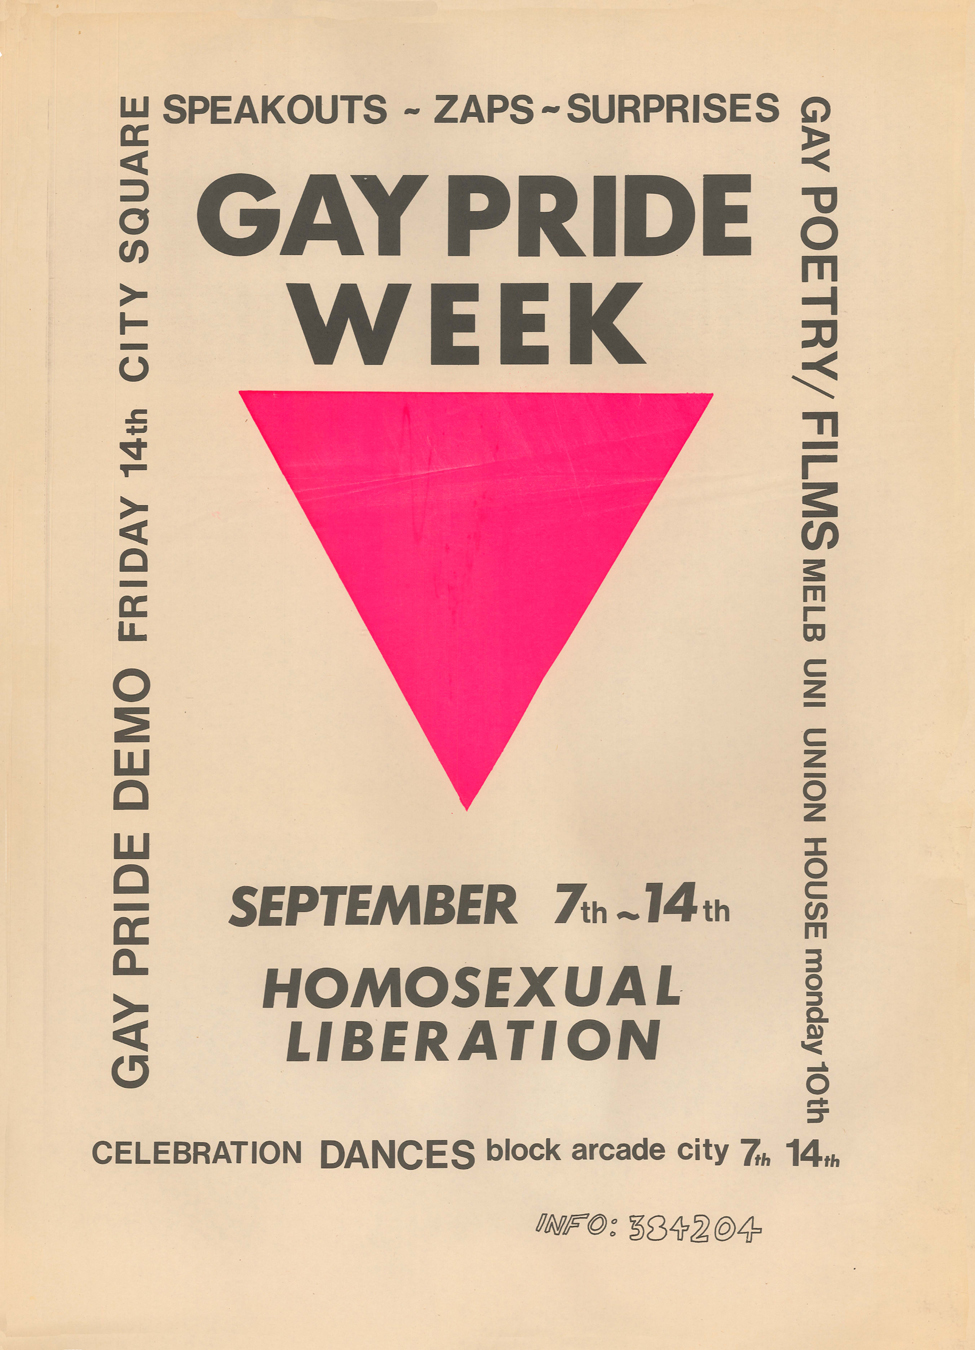 Gay Pride Week Poster 1973. Courtesy of the Australian Lesbian and Gay Archives.